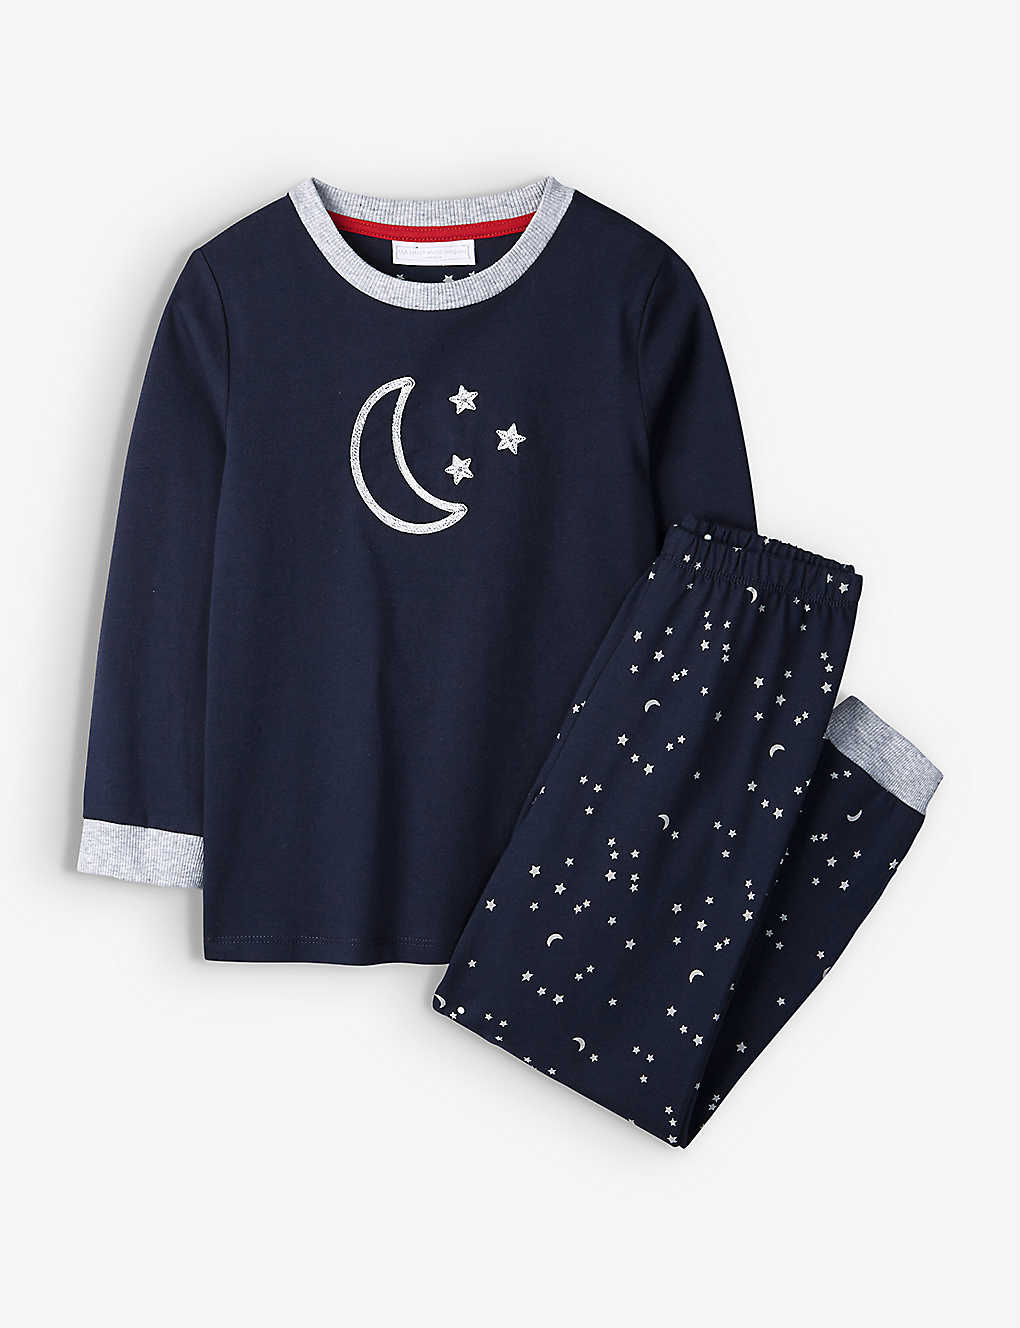 THE LITTLE WHITE COMPANY: Graphic-print cotton pyjamas 7-12 years